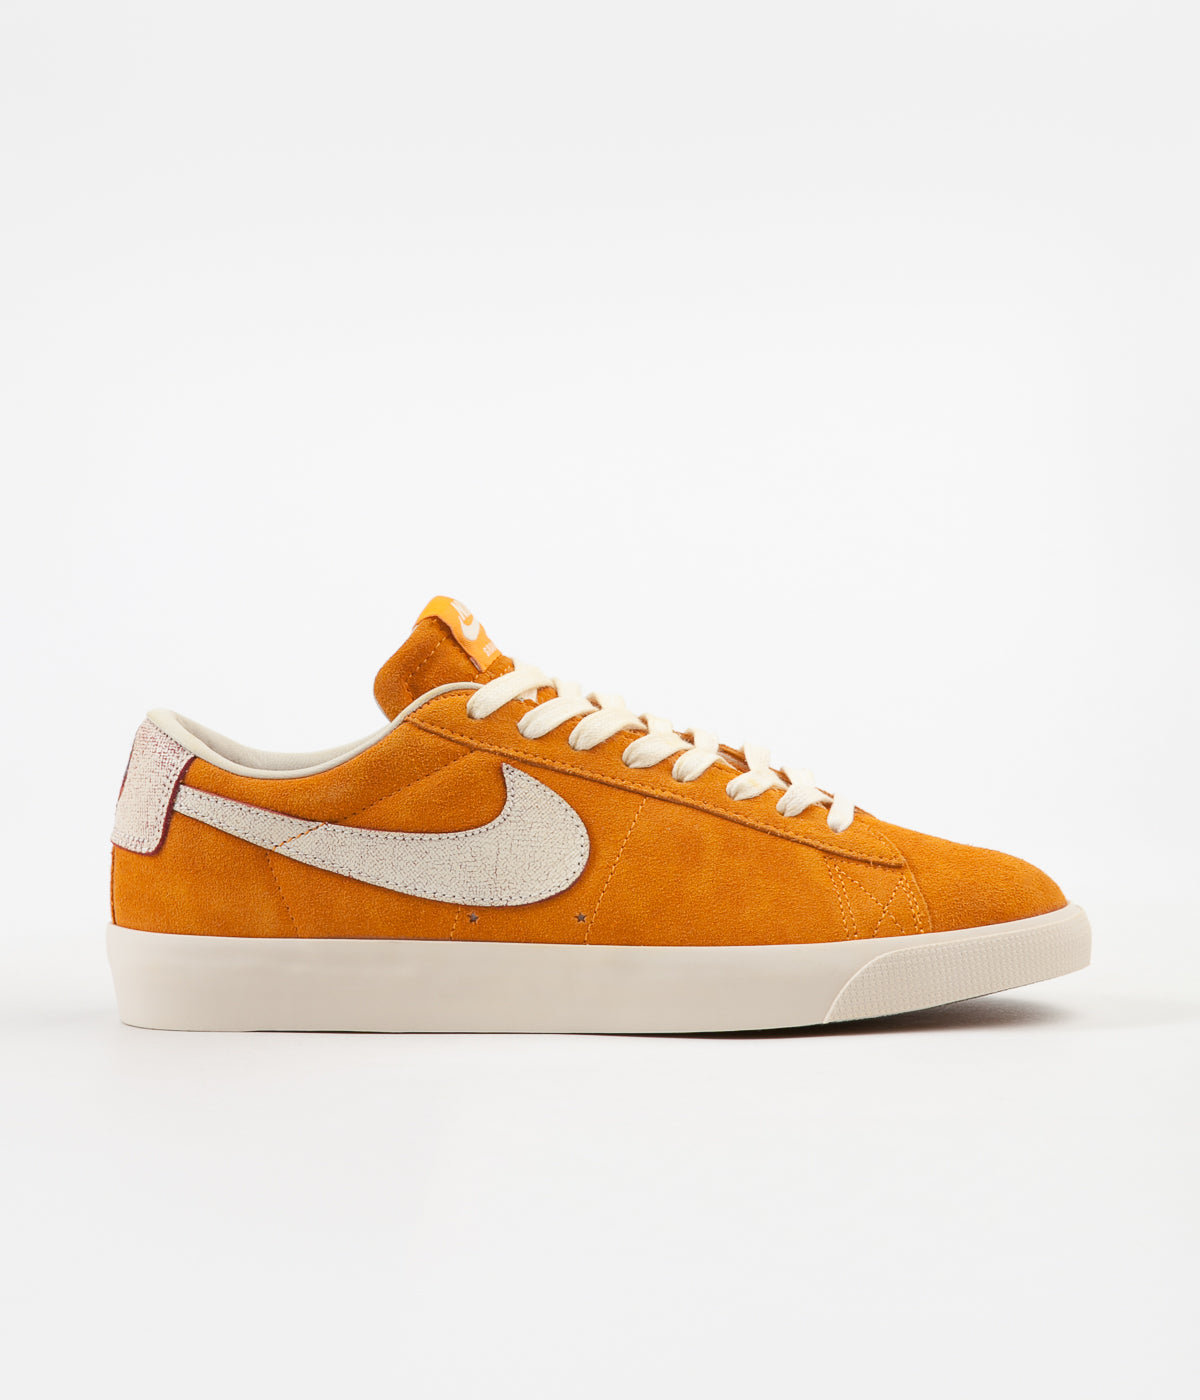 best cheap c4270 4cdcc Nike SB  Bruised Peach  Blazer Low GT Shoes - Circuit Orange   Natural -  Team Red